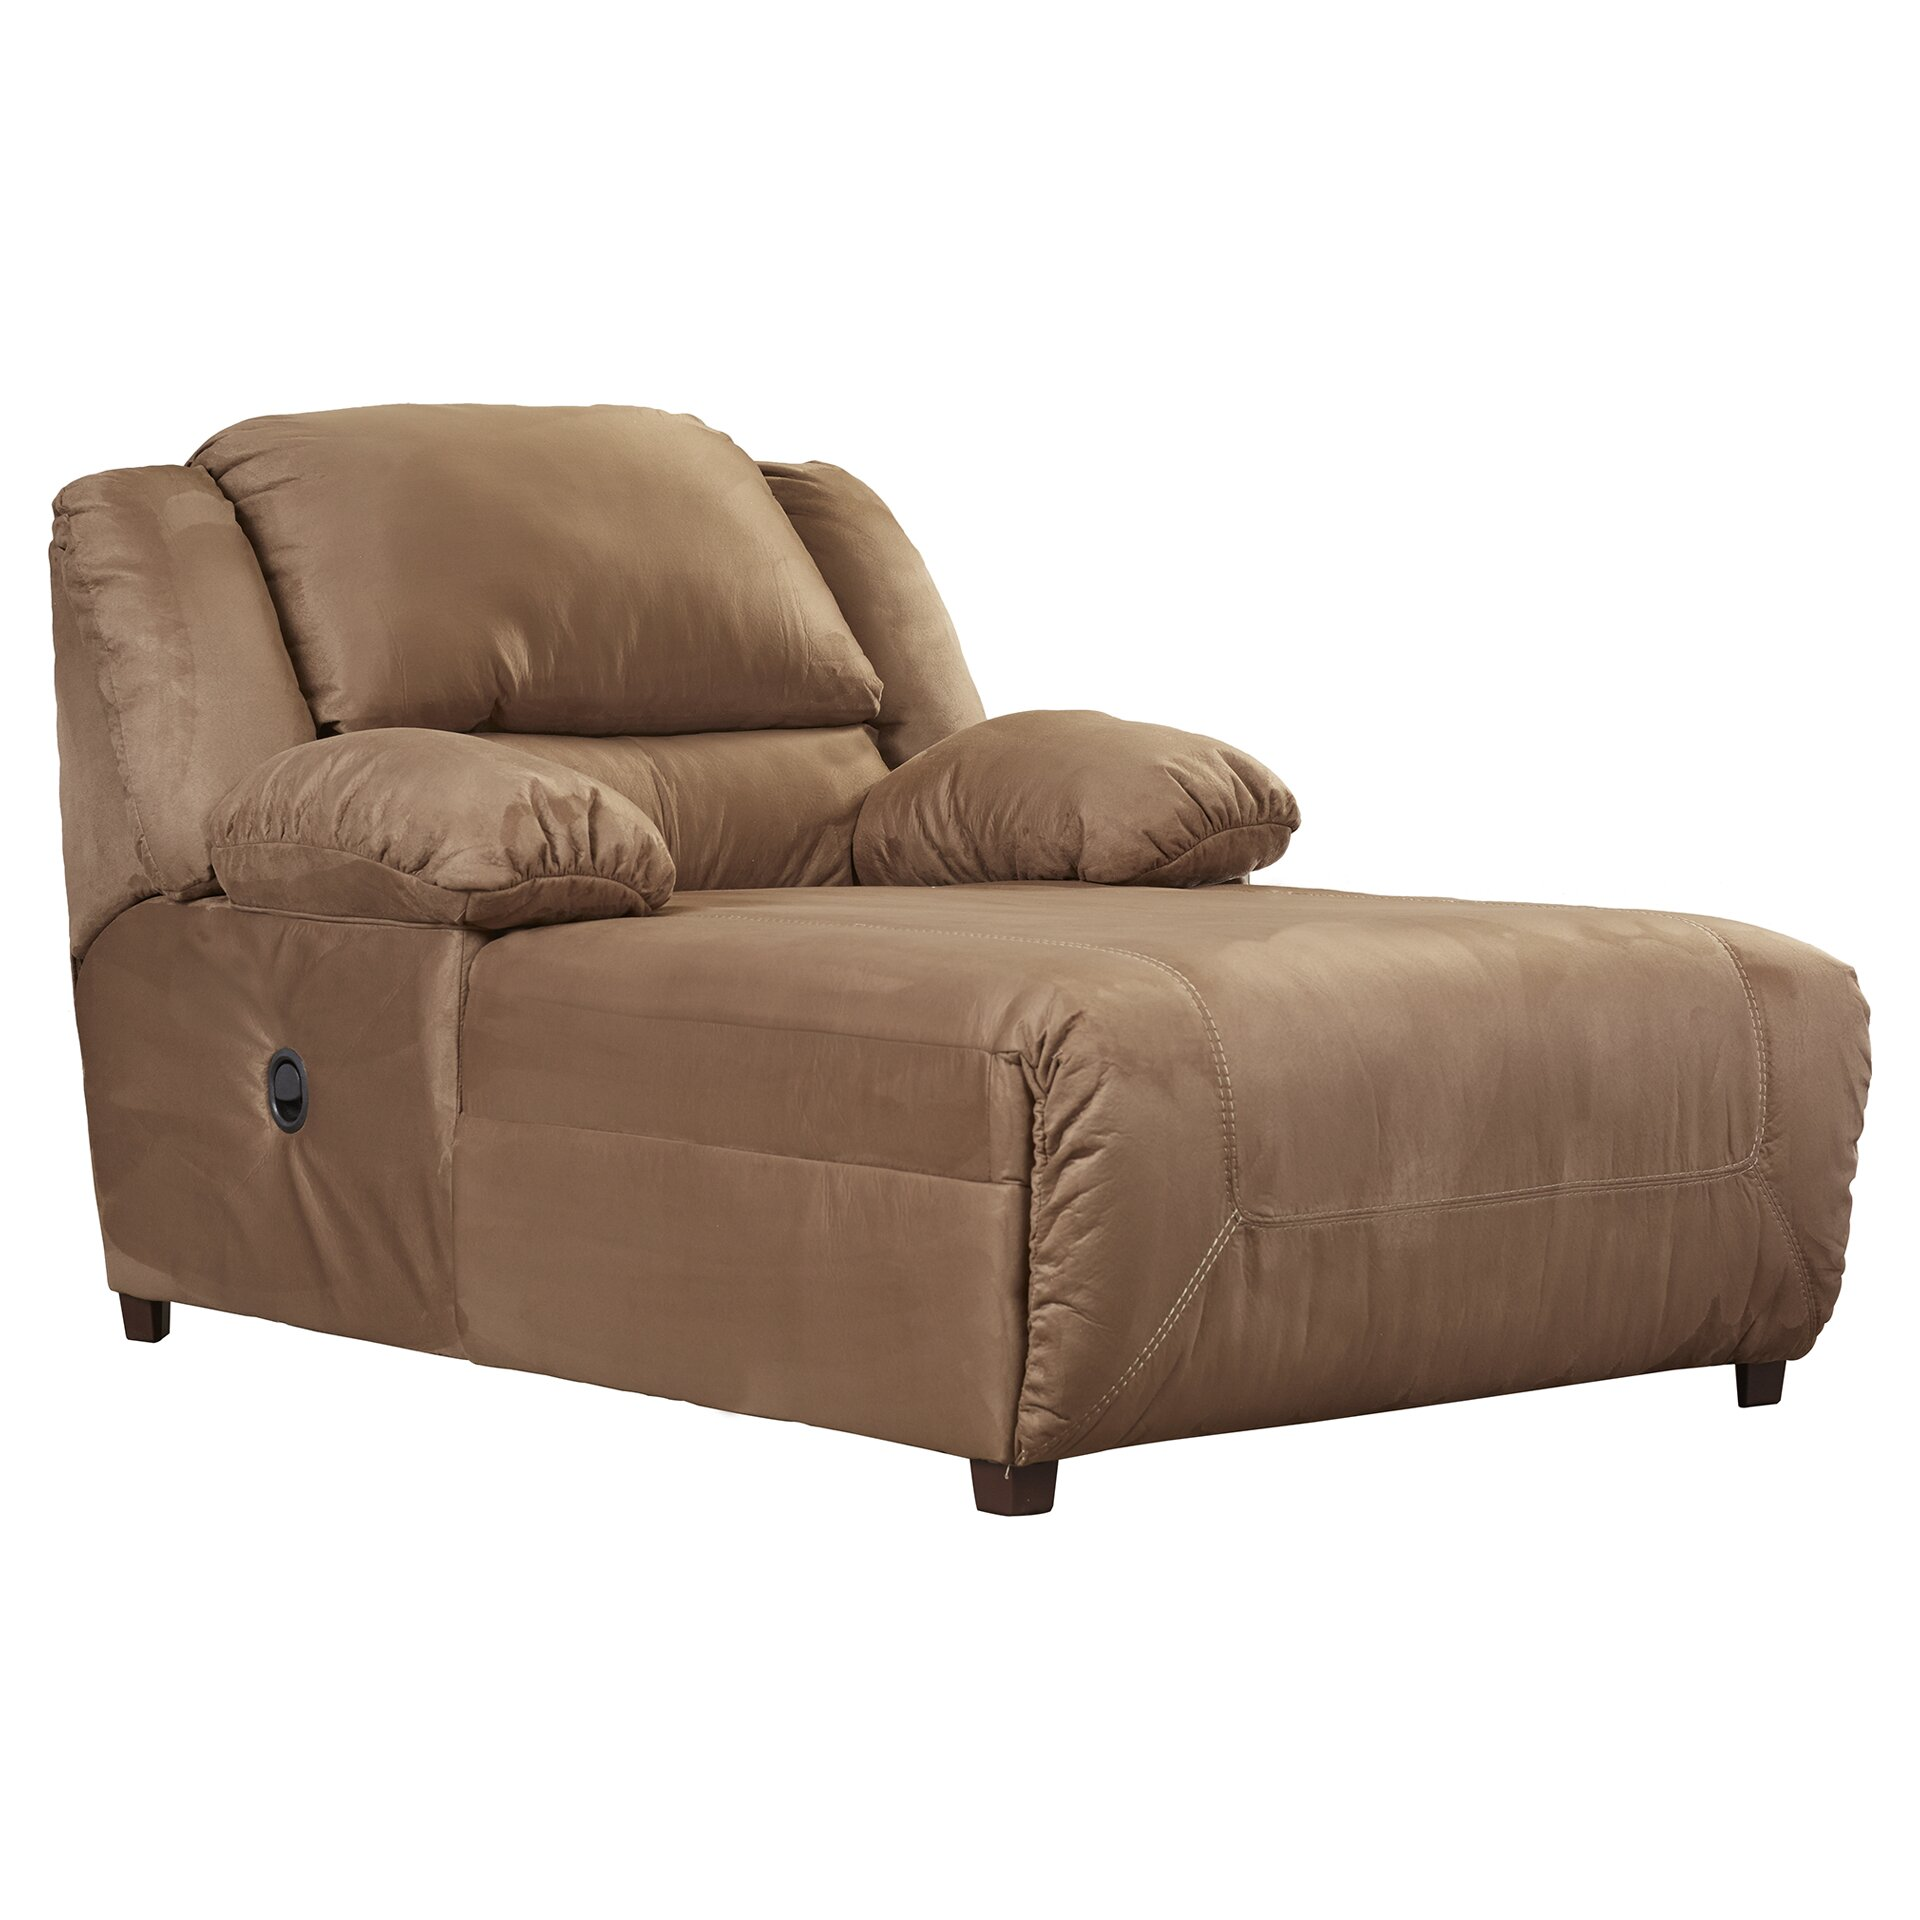 Darby home co jimenes microfiber chaise recliner reviews for Chaise and recliner